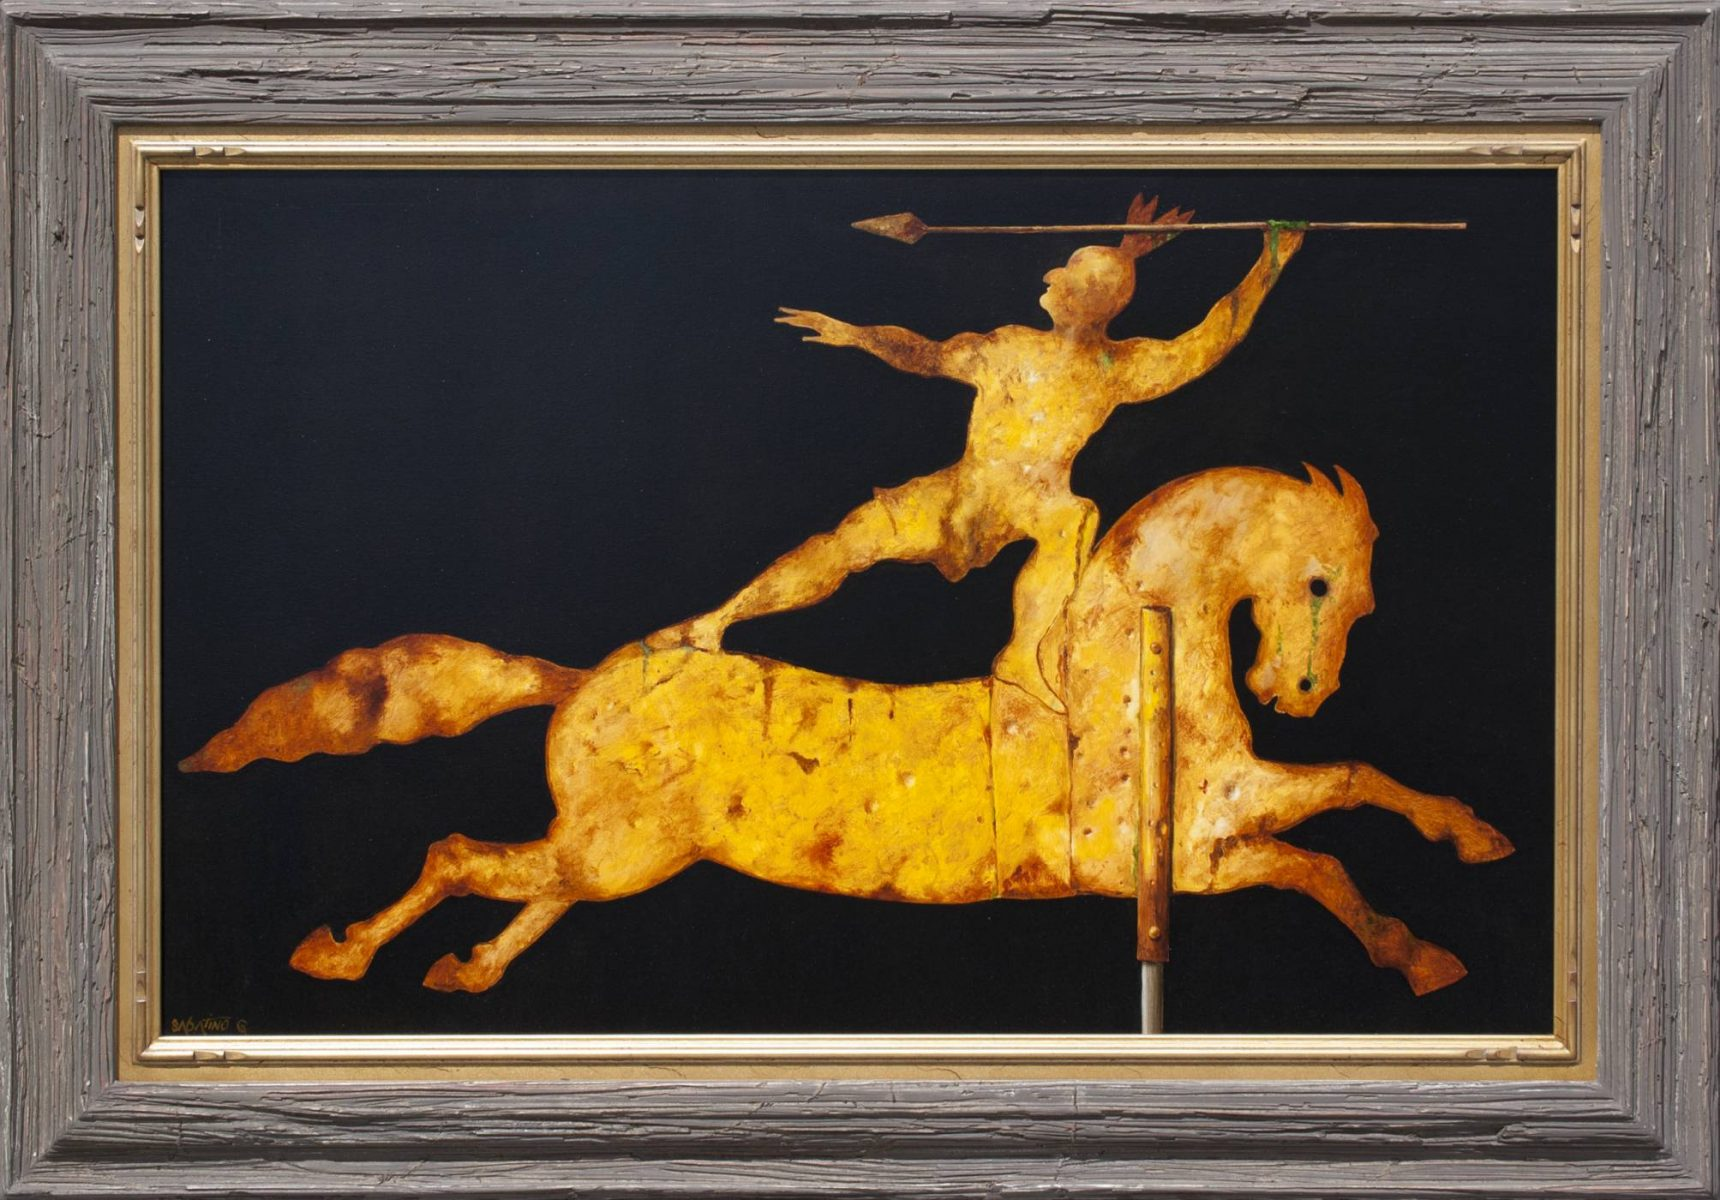 Vintage Gilt Decorated Indian on Running Horse by artist Chuck Sabatino